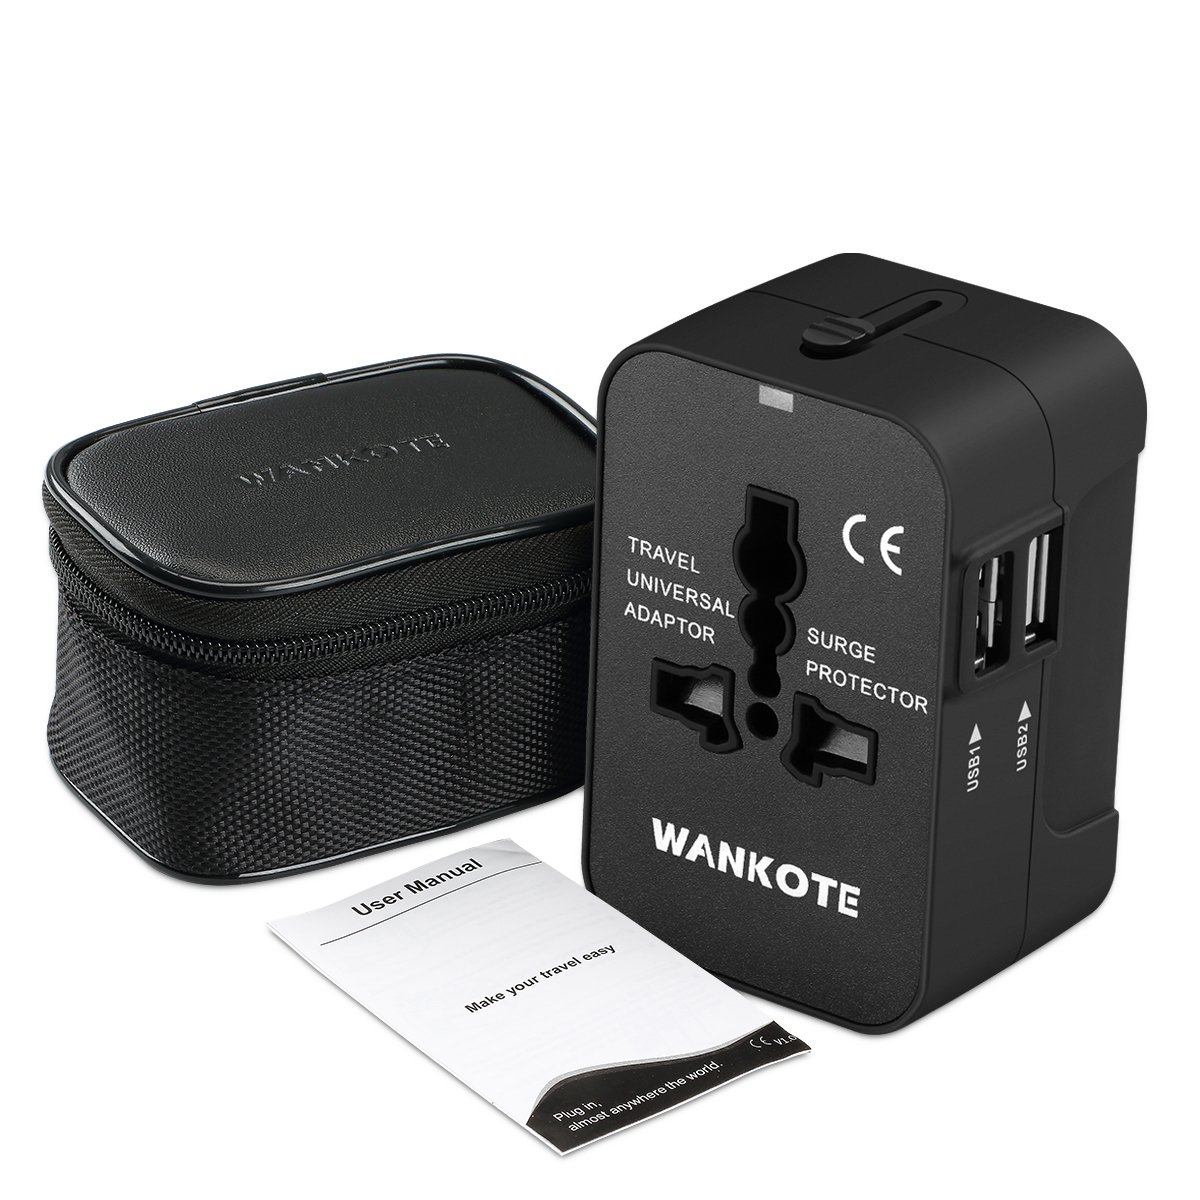 WANKOTE Travel Adapter, International Universal All in One Converter Plug with 2 USB Ports for USA EU UK AUS Cell Phone Laptop